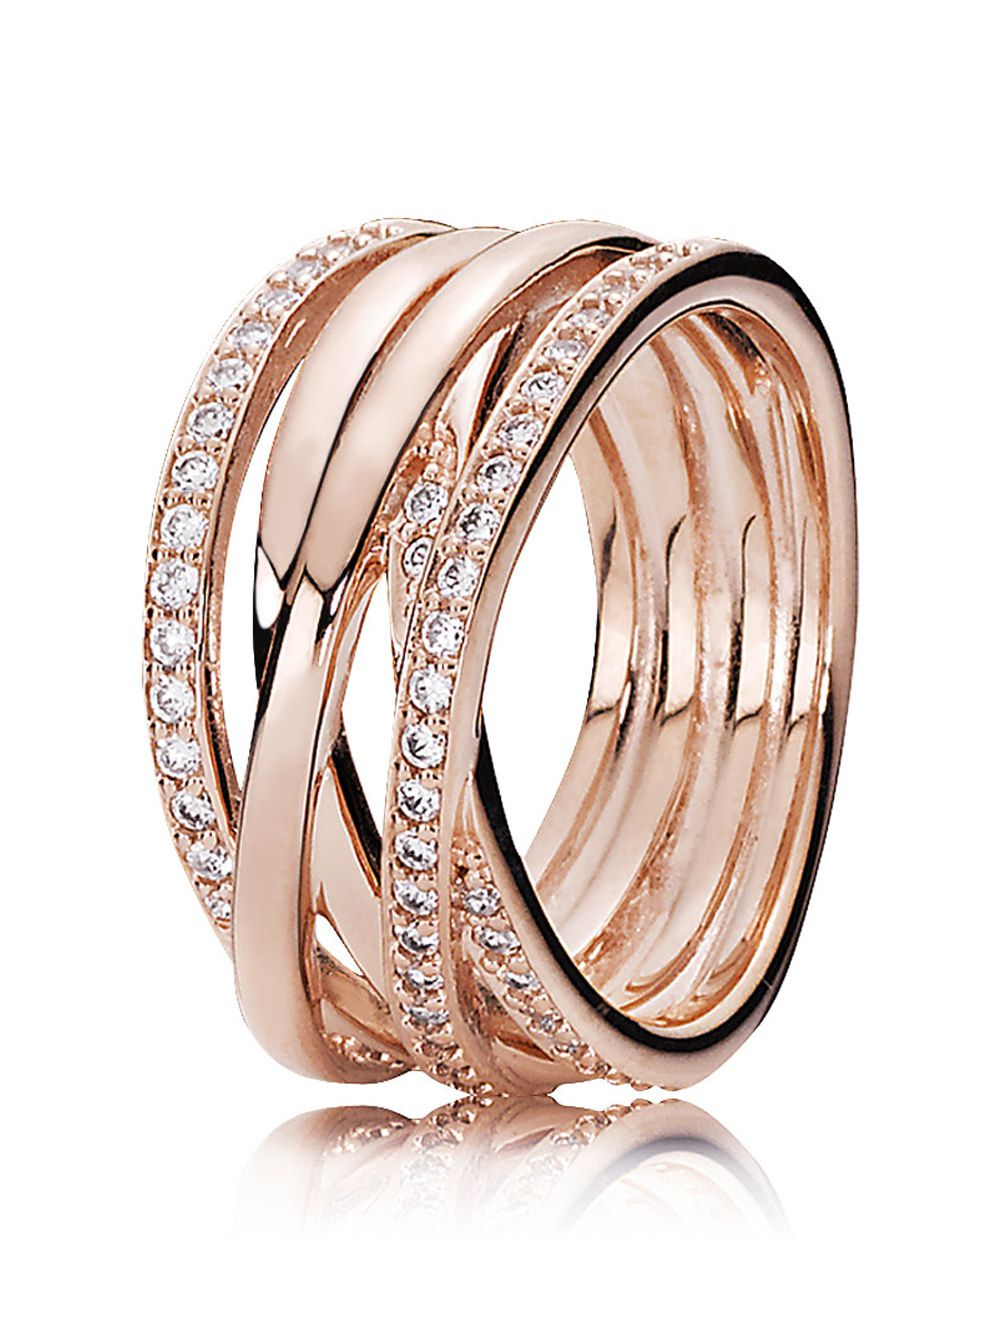 Pandora 180919Cz Ladies Ring Entwined Rose For Latest Entwined Circles Pandora Logo & Sparkle Rings (View 7 of 25)